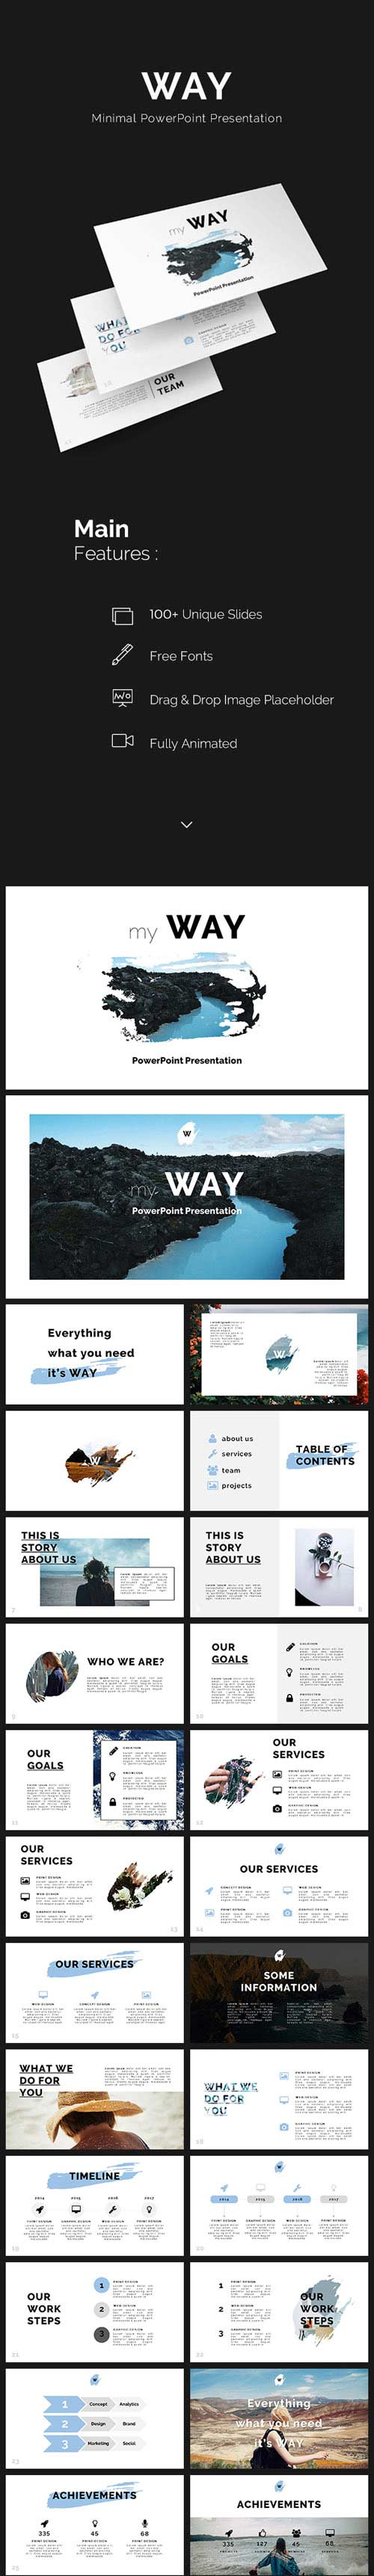 GR - Way Minimal PowerPoint Template 19444626